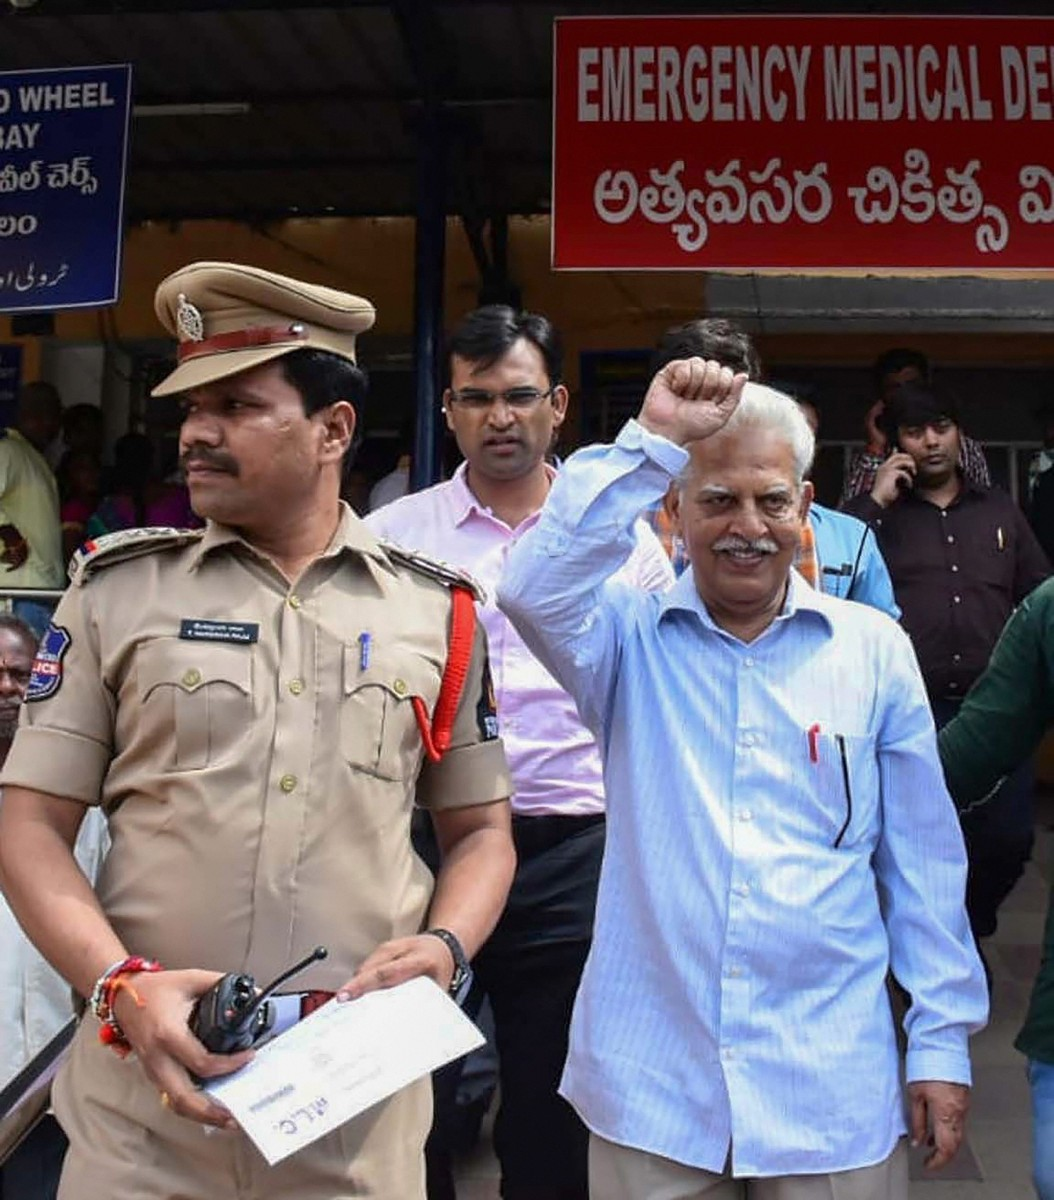 Varavara Rao being taken away by the police on Tuesday. Credit: PTI